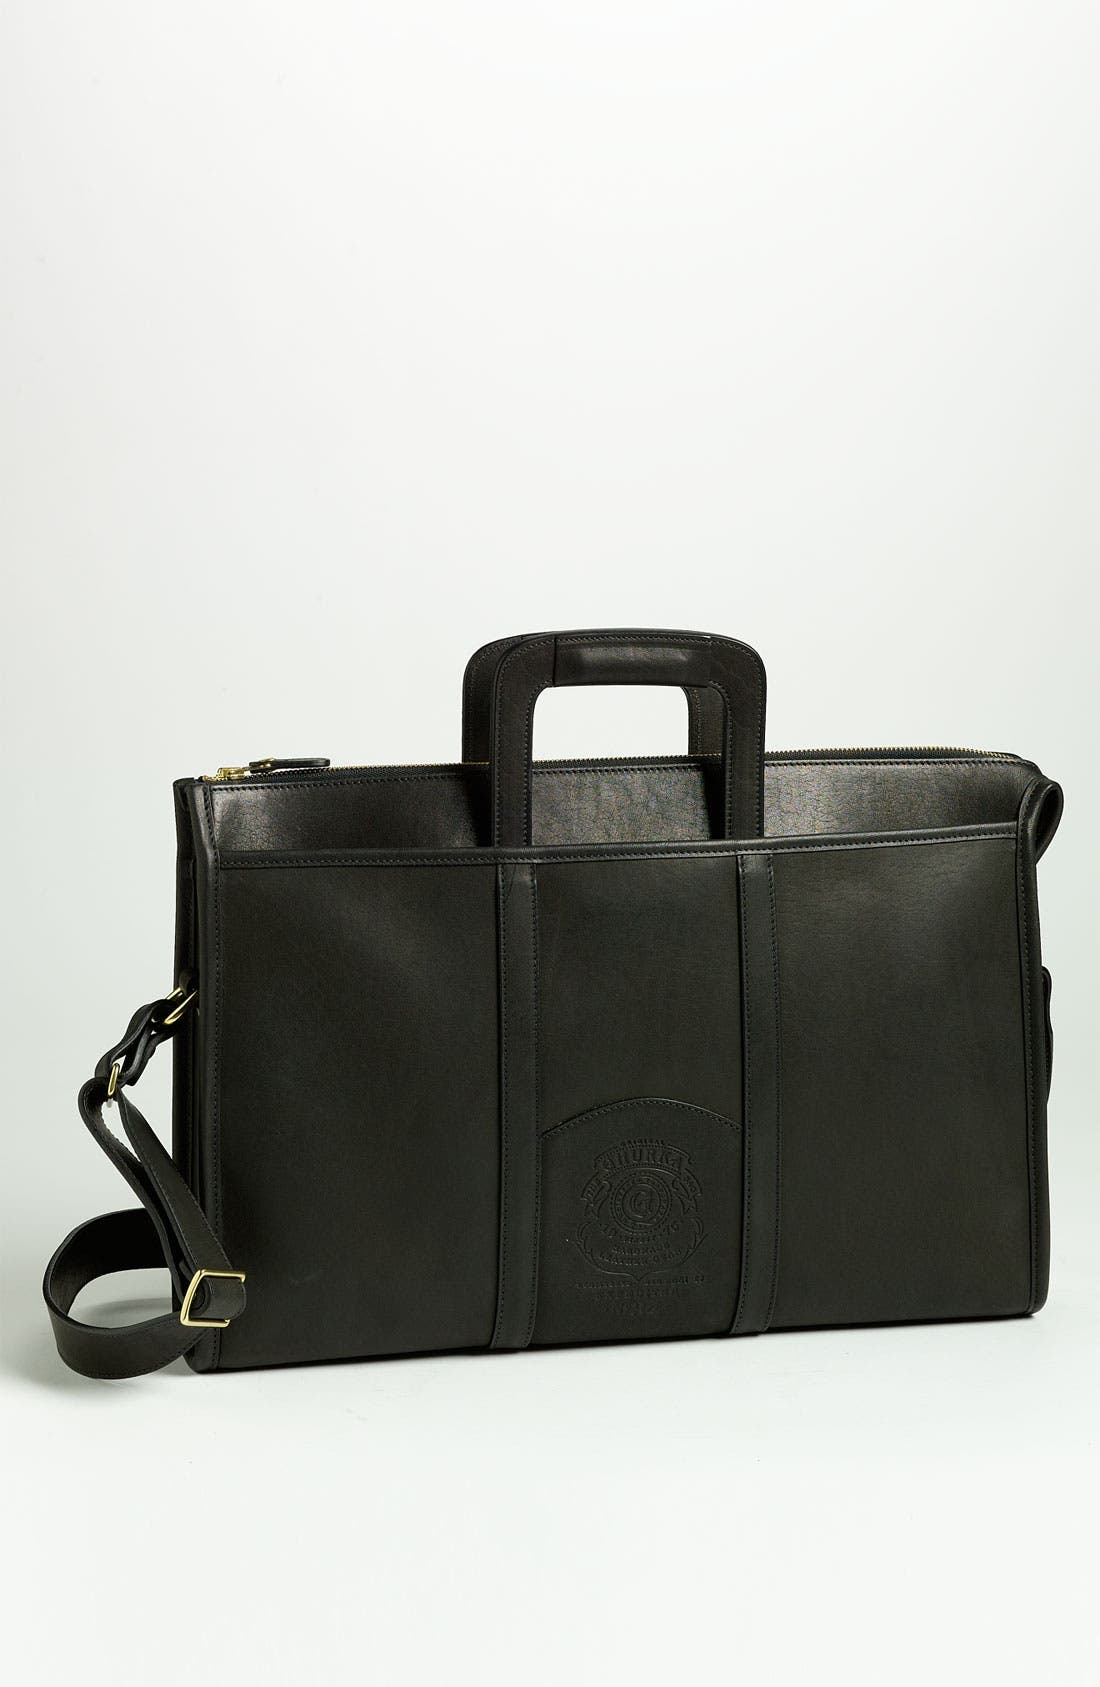 Alternate Image 1 Selected - Ghurka 'Expeditor' Leather Briefcase